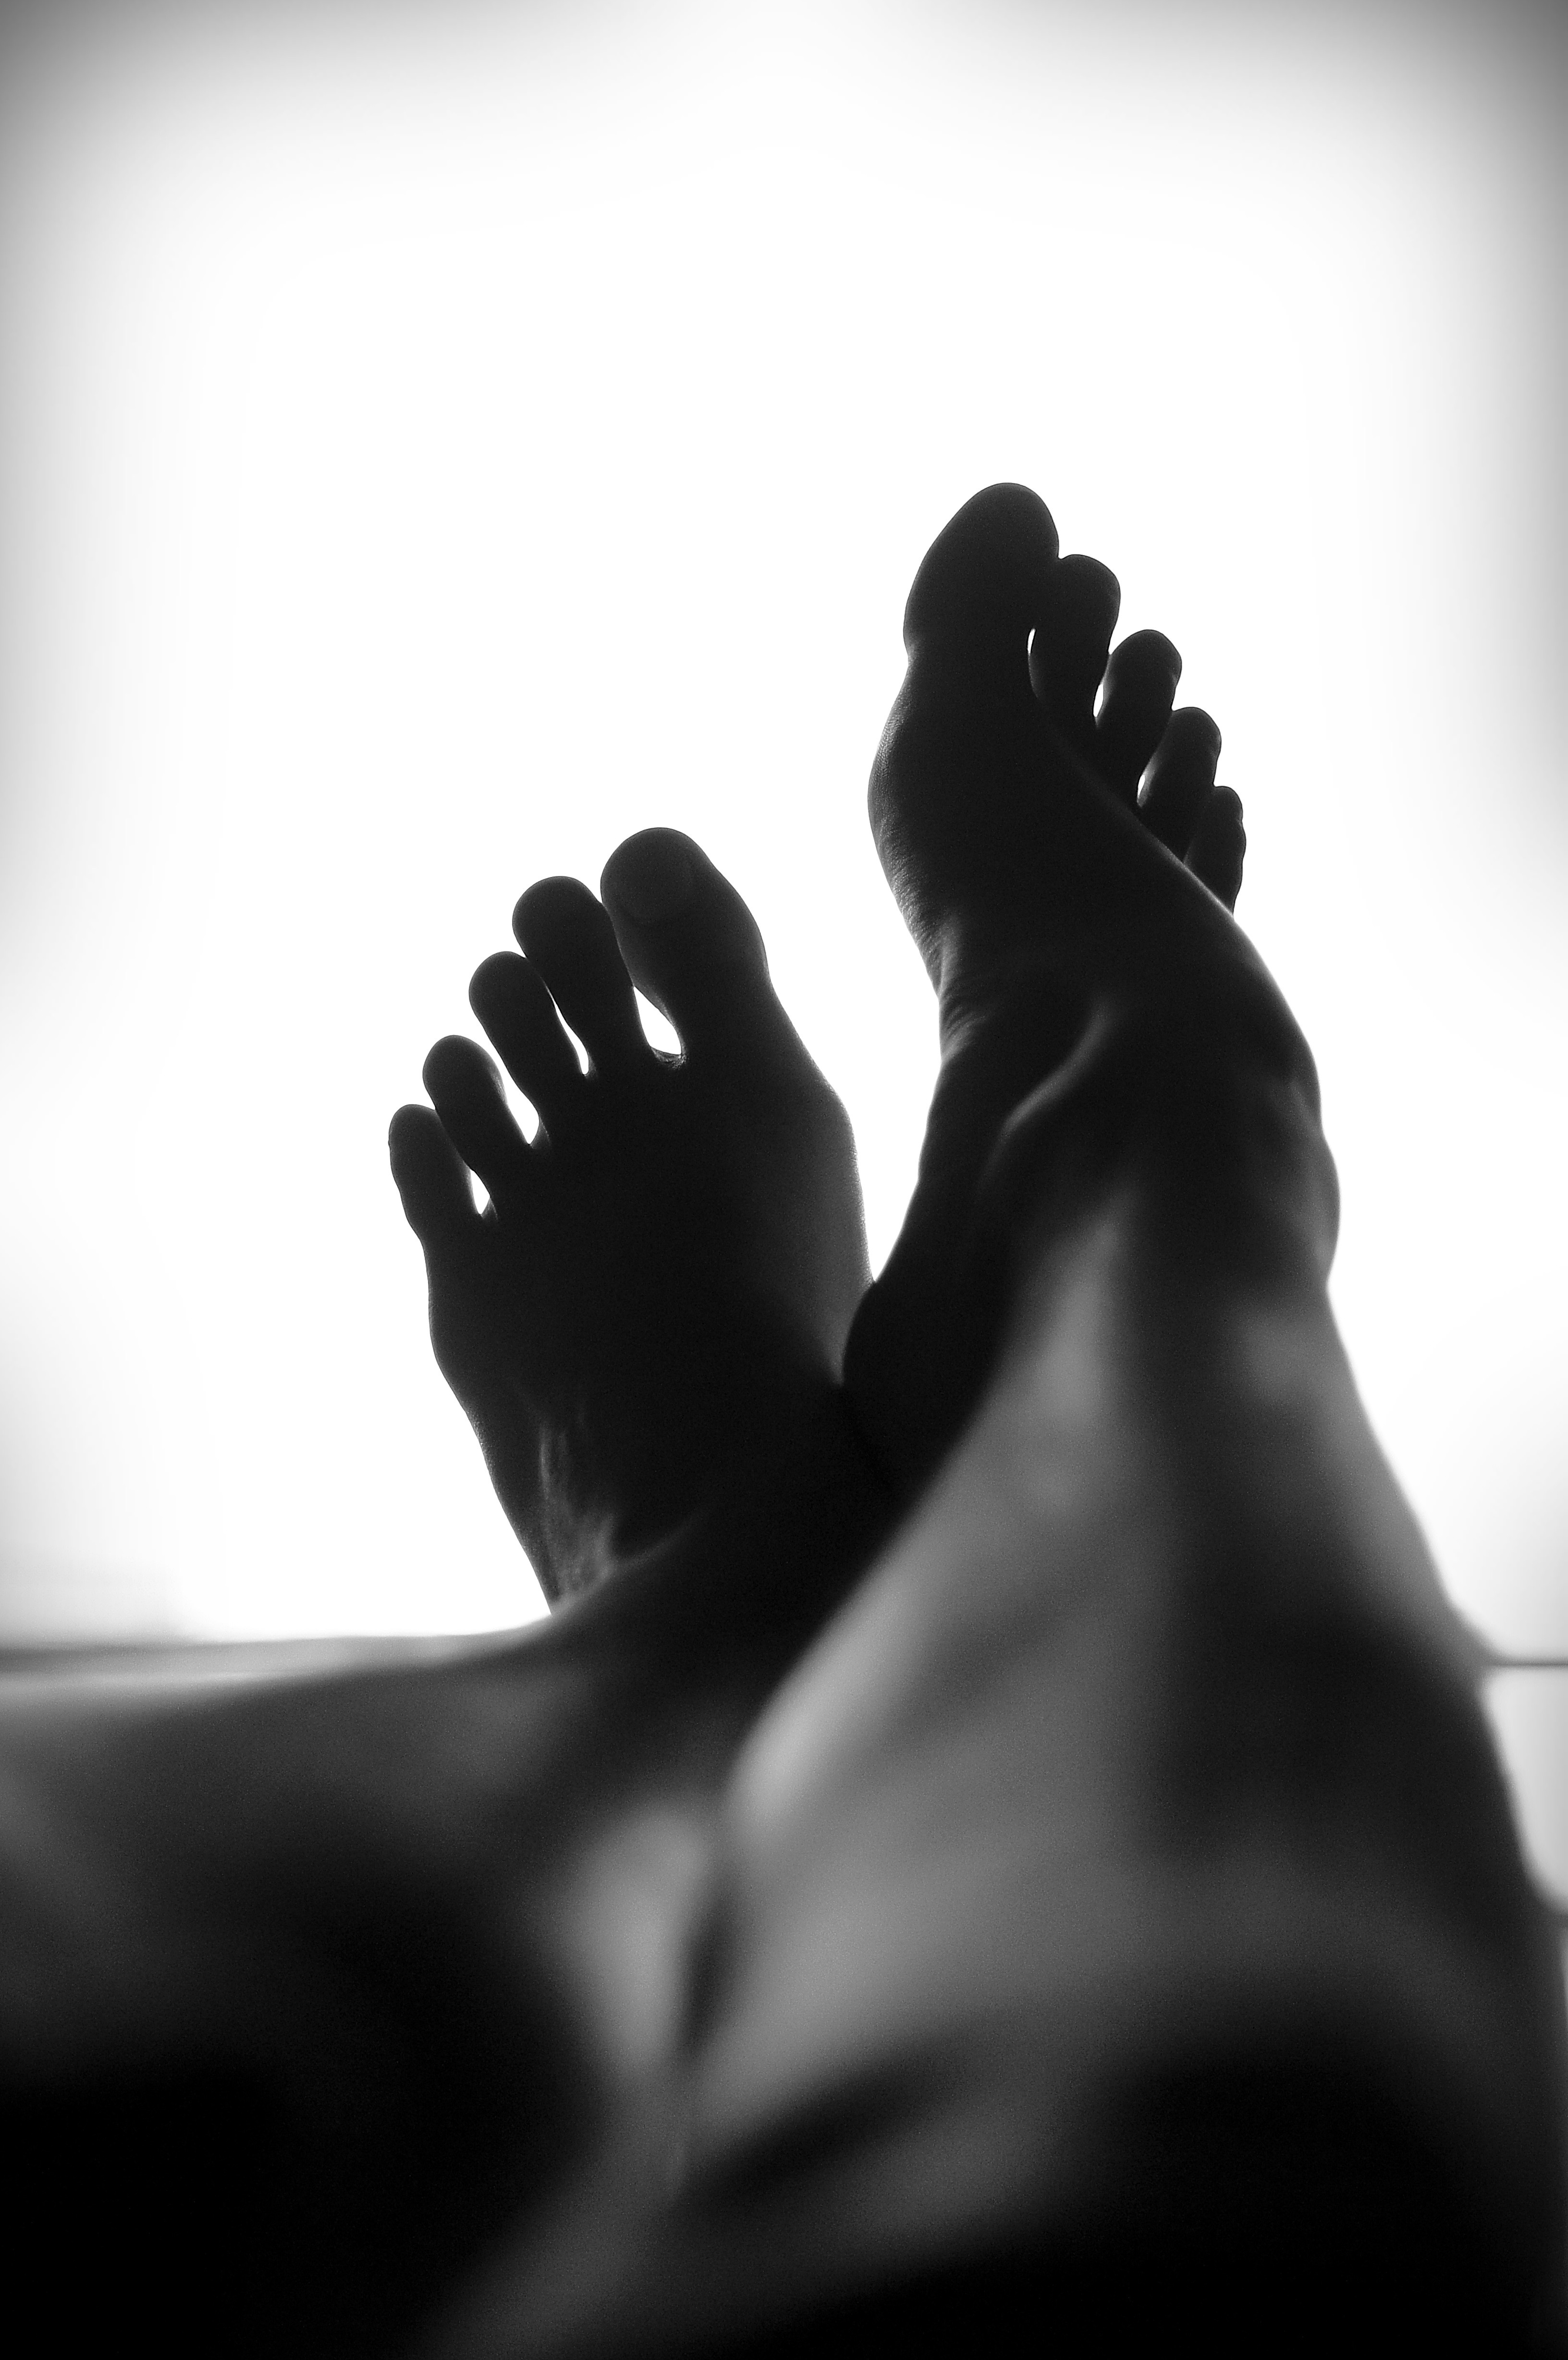 Two feet in black and white